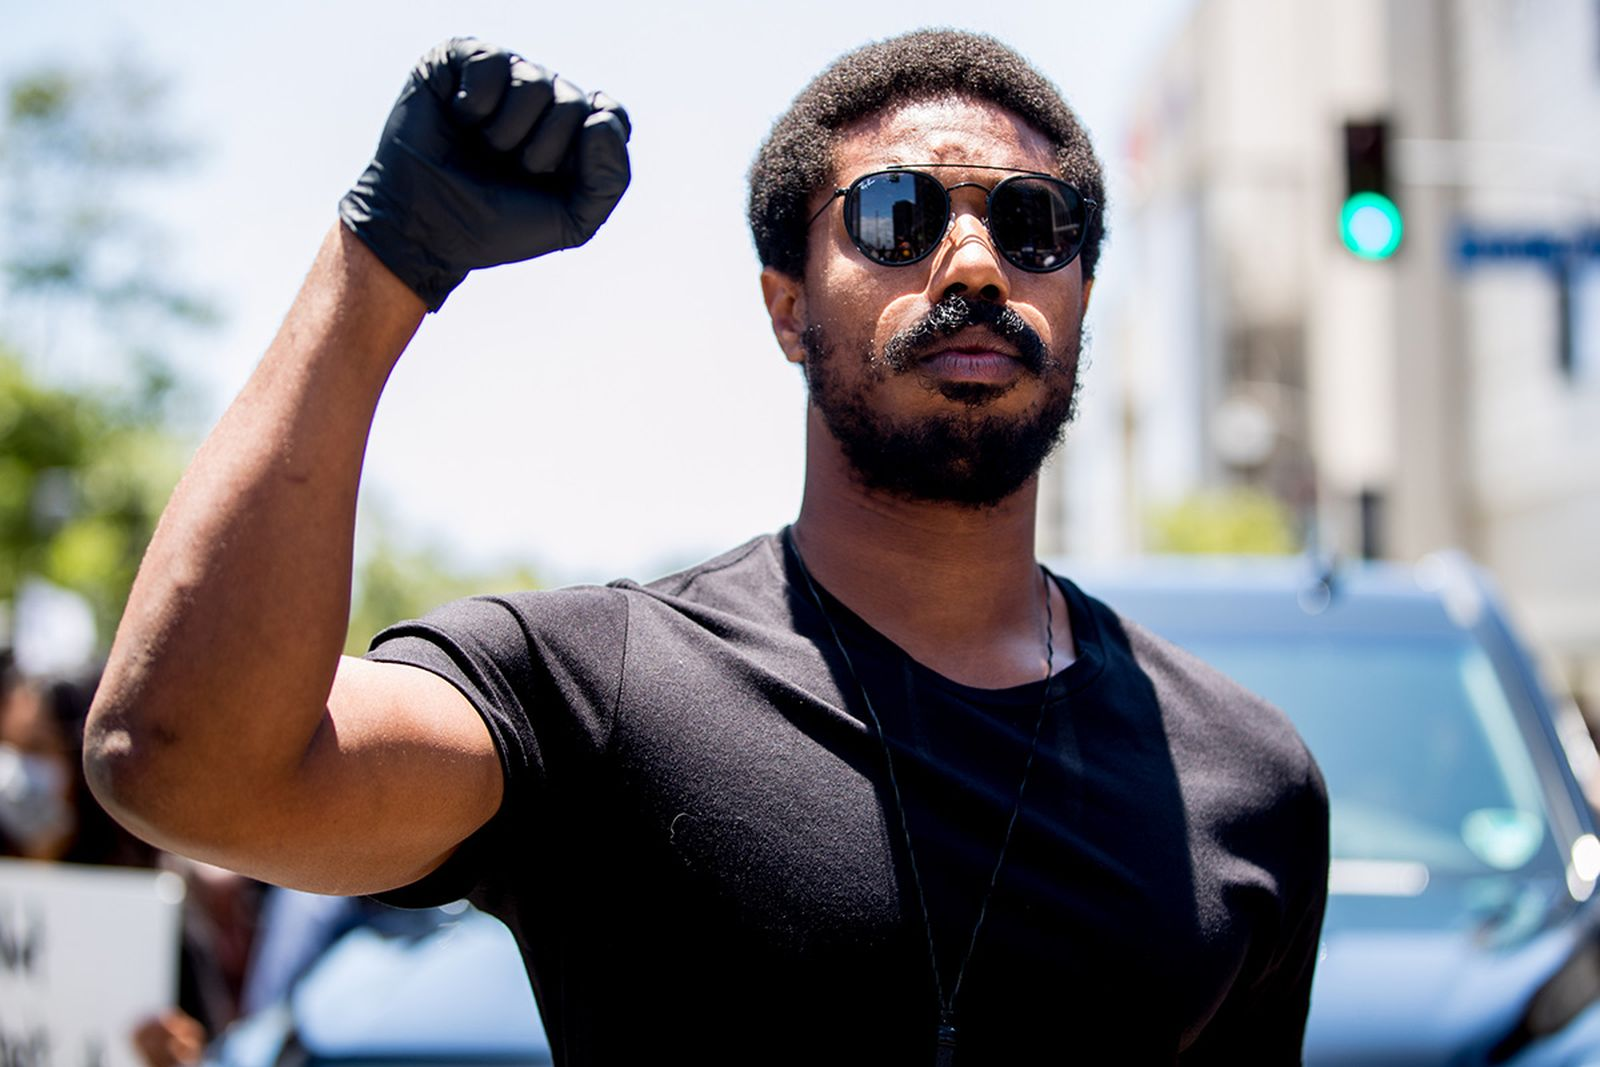 Michael B. Jordan participates in the Hollywood talent agencies march to support Black Lives Matter